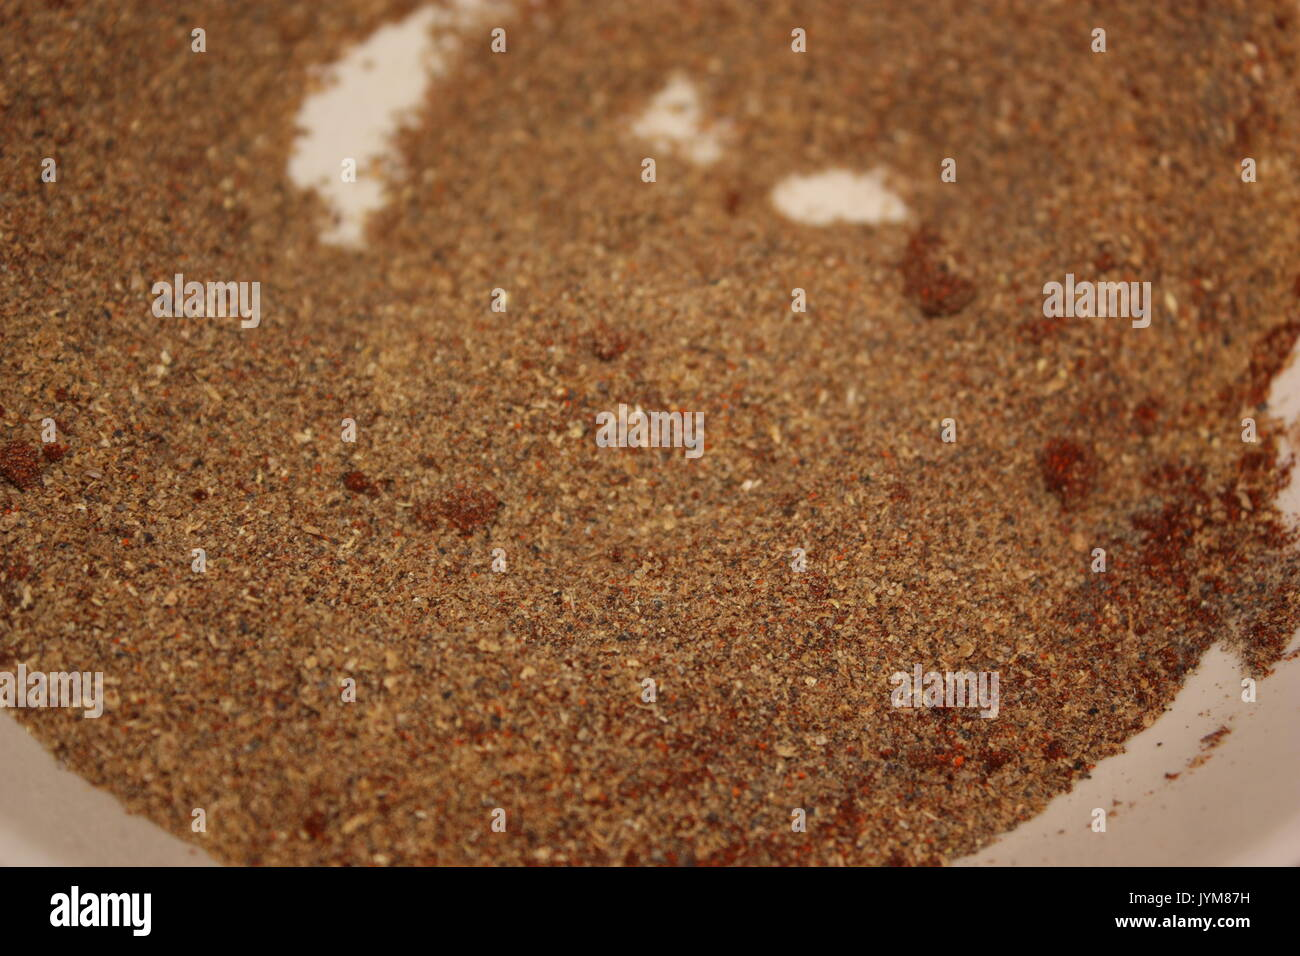 Spiced meat dry rub mix Stock Photo